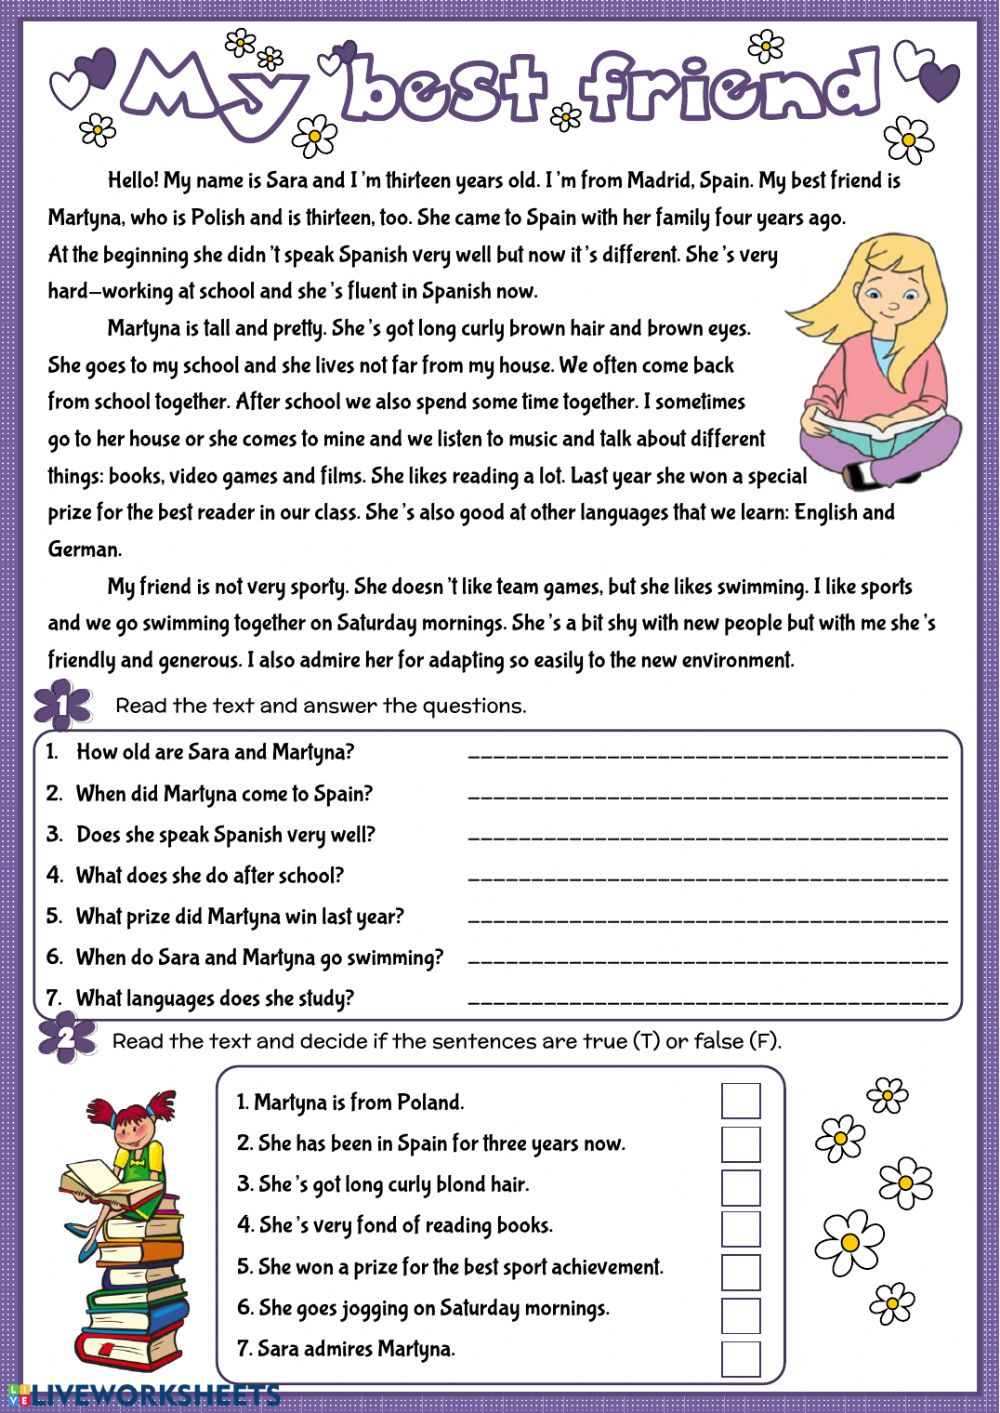 My best friend - Interactive worksheet